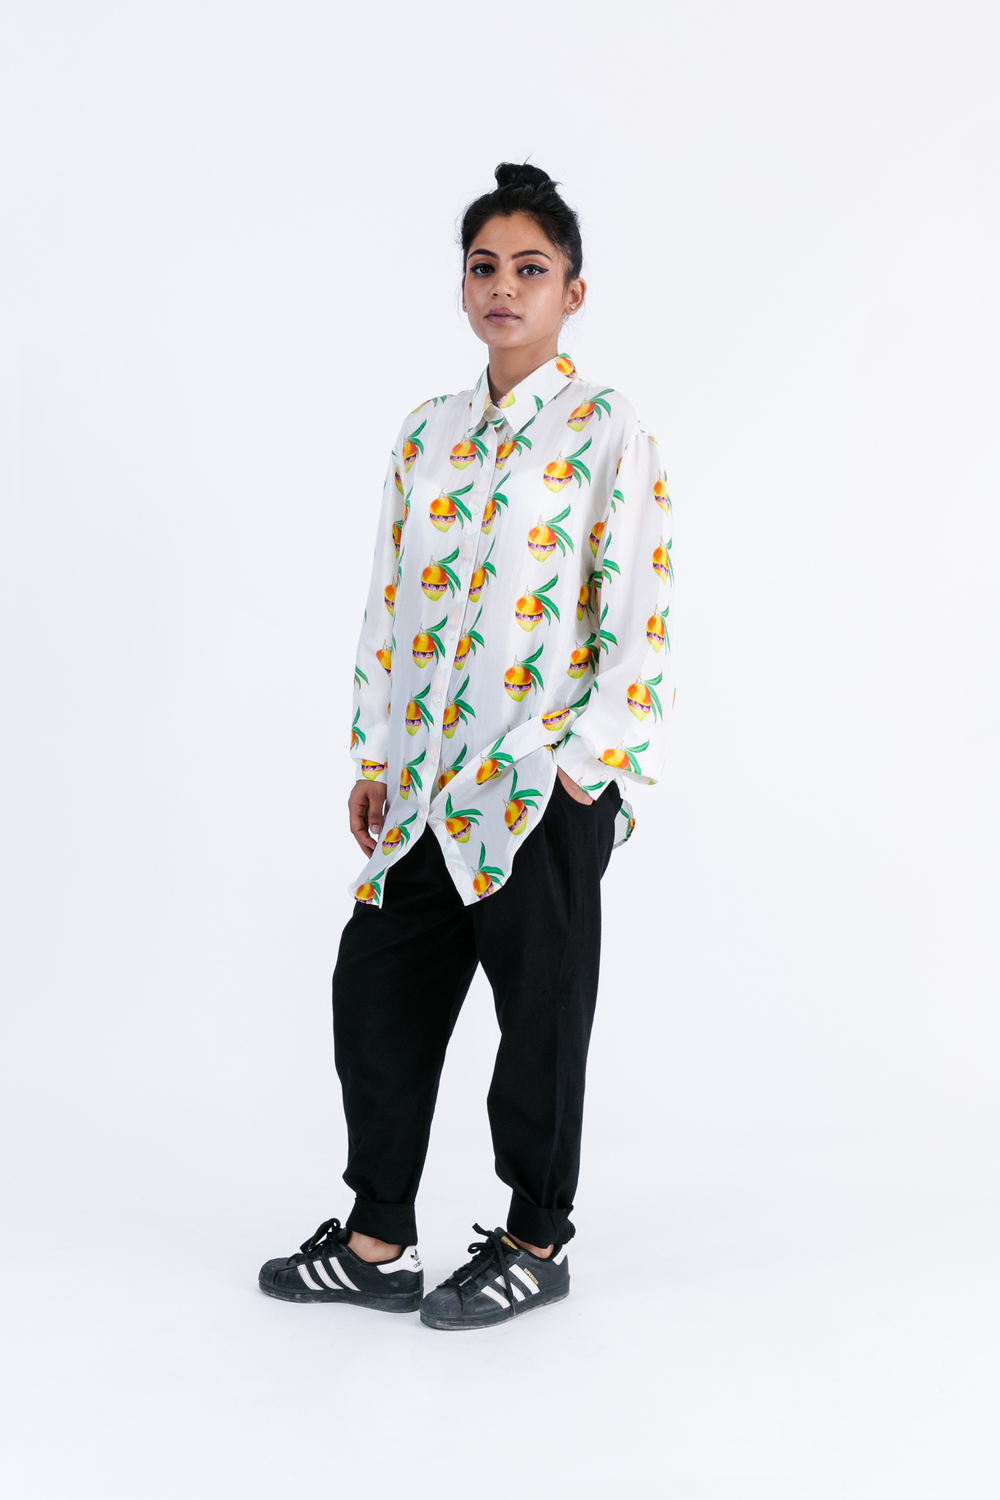 NBNW X RP Mangoverse  Mango Print 100% Silk Blouse - SOLD OUT